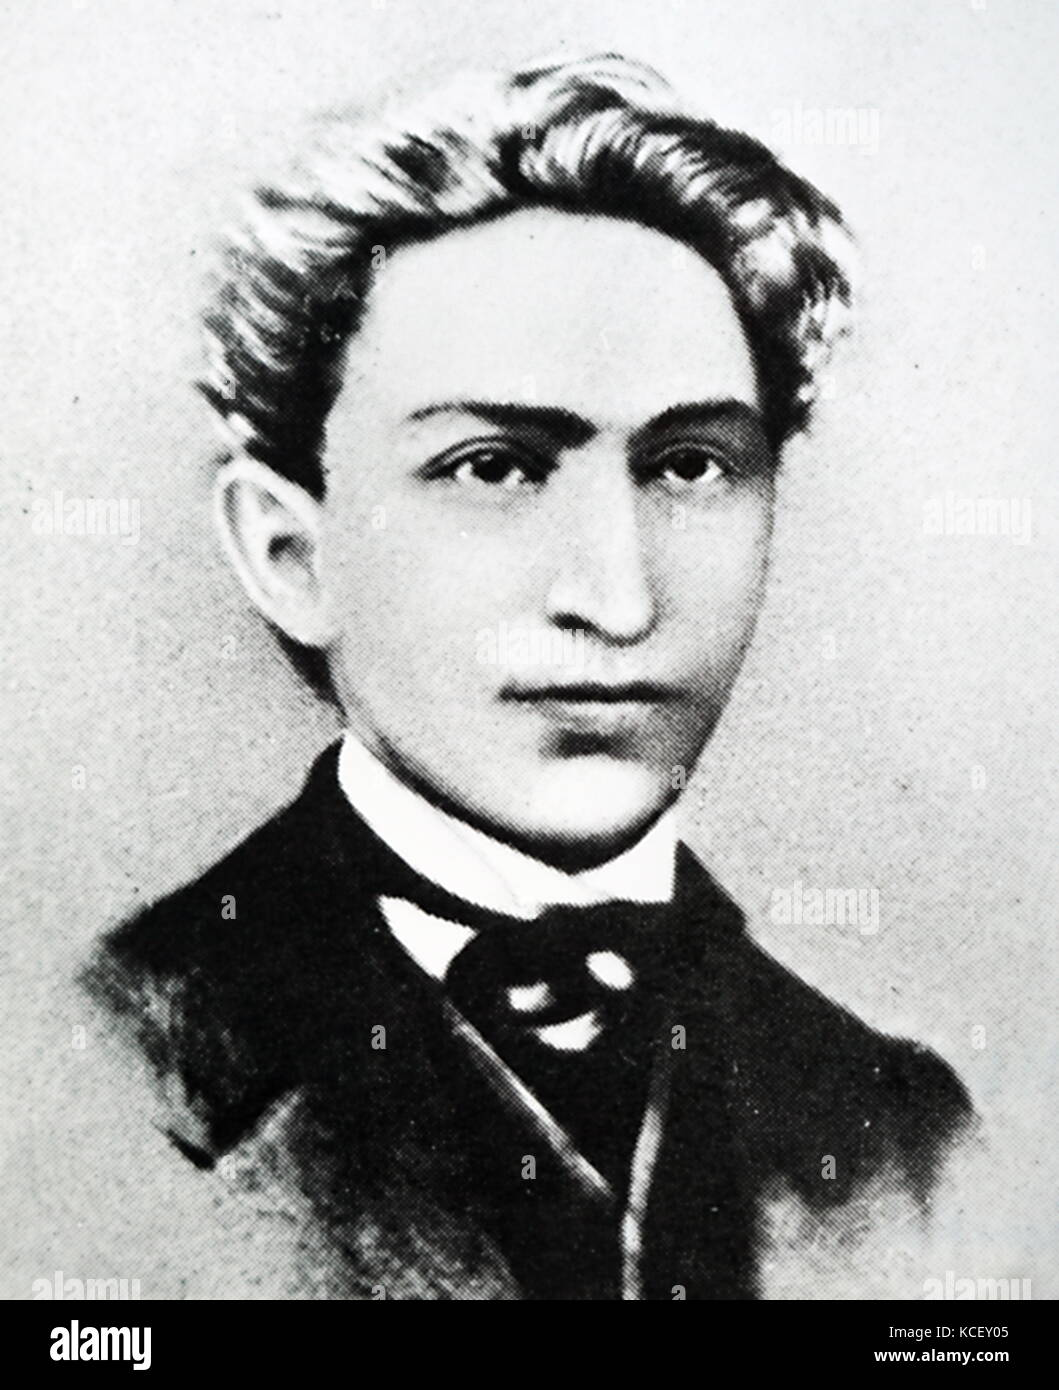 Portrait of Leo Frankel (1844-1896) a Communist revolutionary of Hungarian and Jewish origin. Dated 19th Century - Stock Image